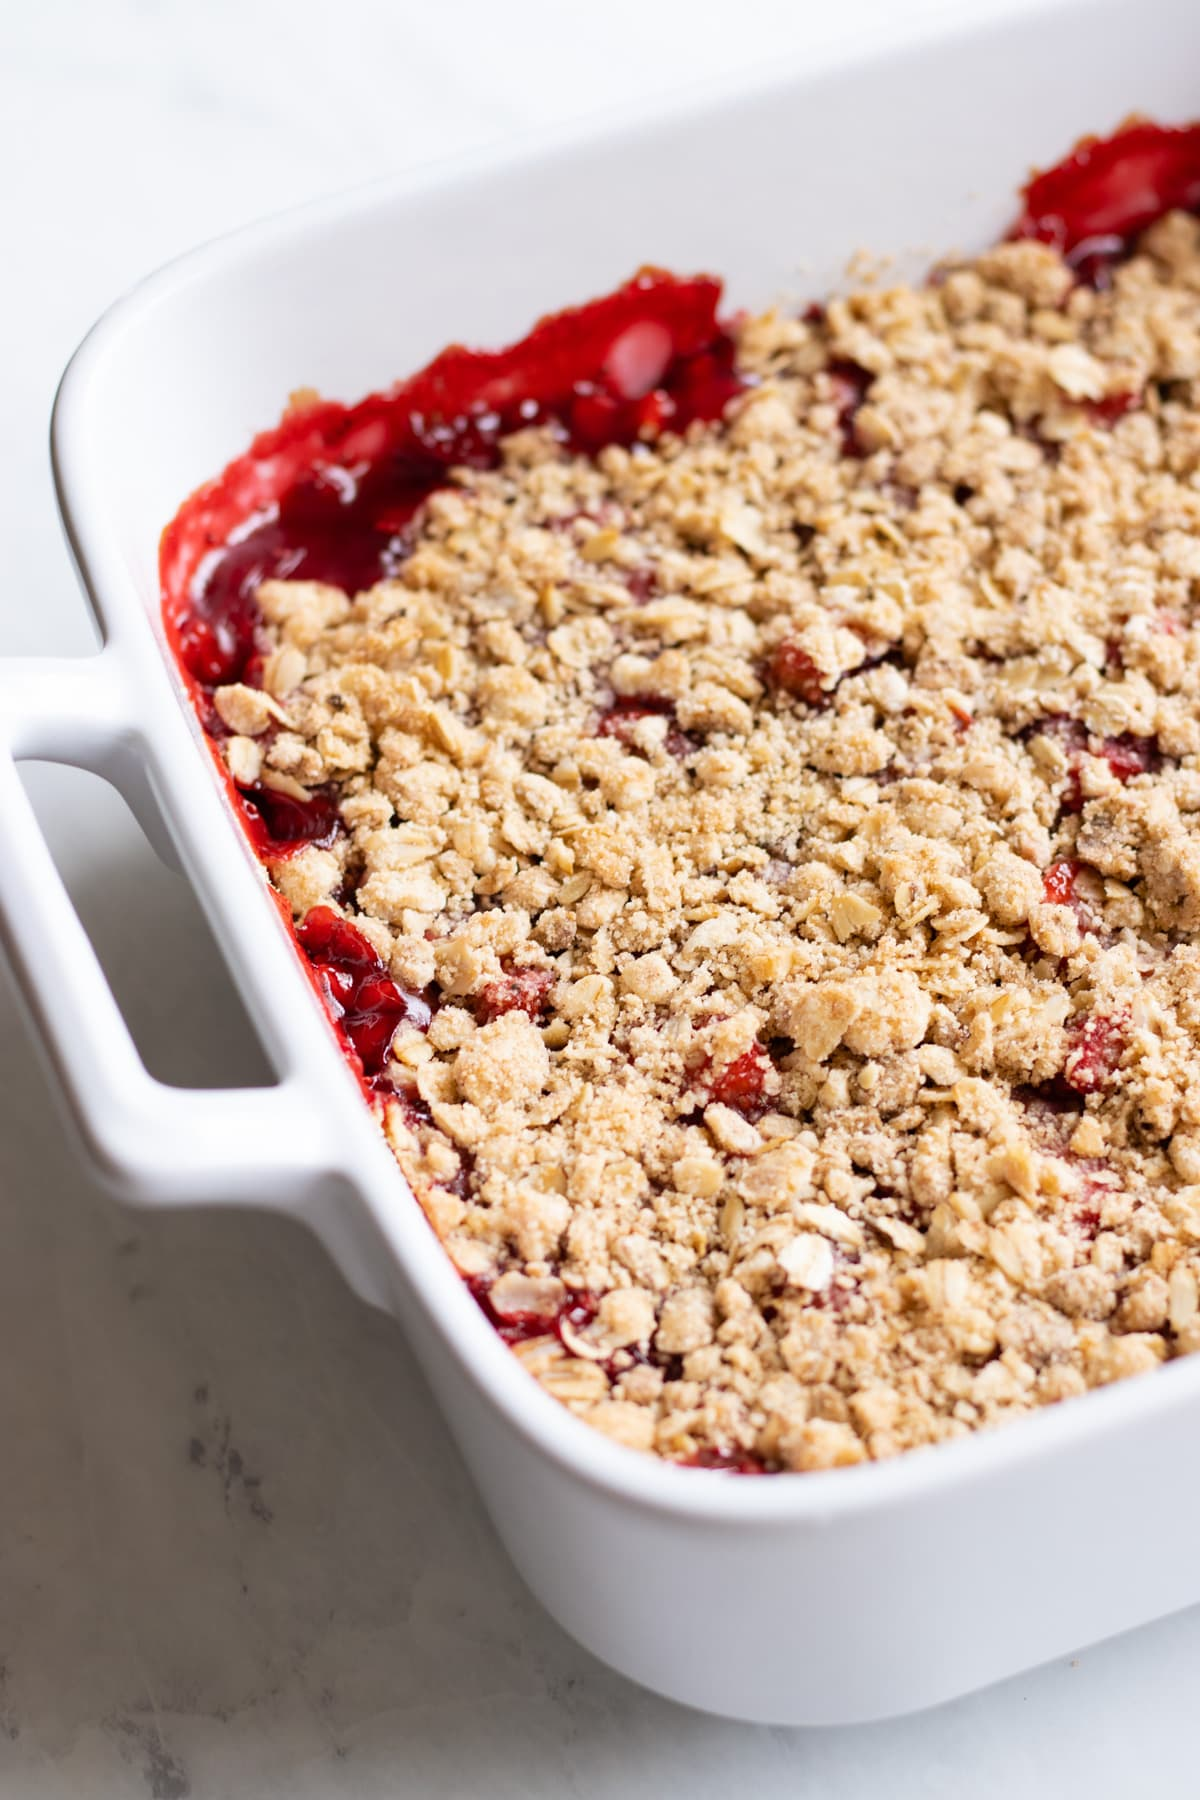 Baked strawberry-rhubarb crumble in a white baking dish.